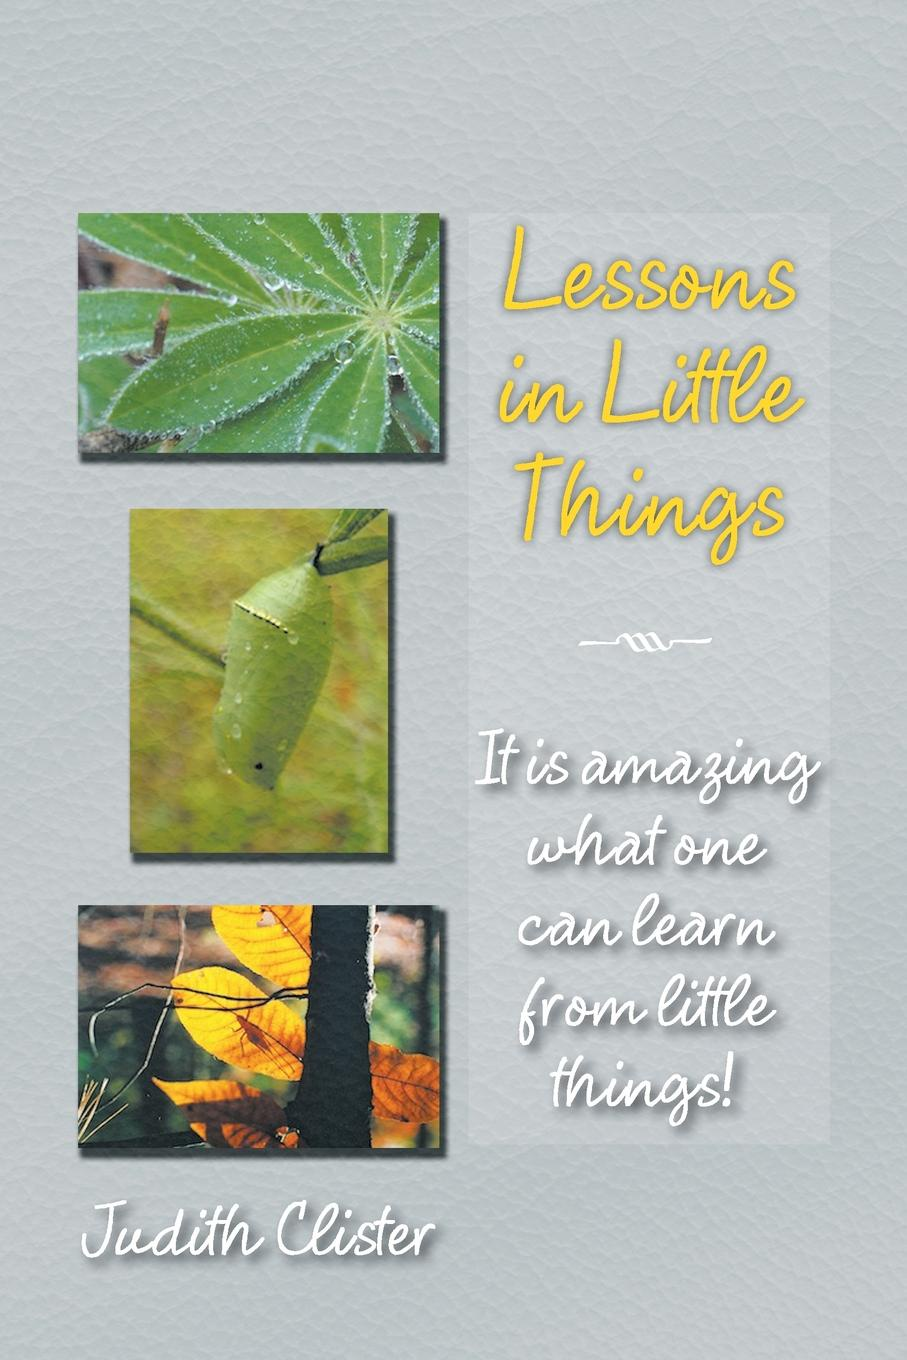 Judith Clister Lessons in Little Things. It Is Amazing What One Can Learn from Little Things! aleksandr strannik the most amazing things from the transpersonal psychologist's practice